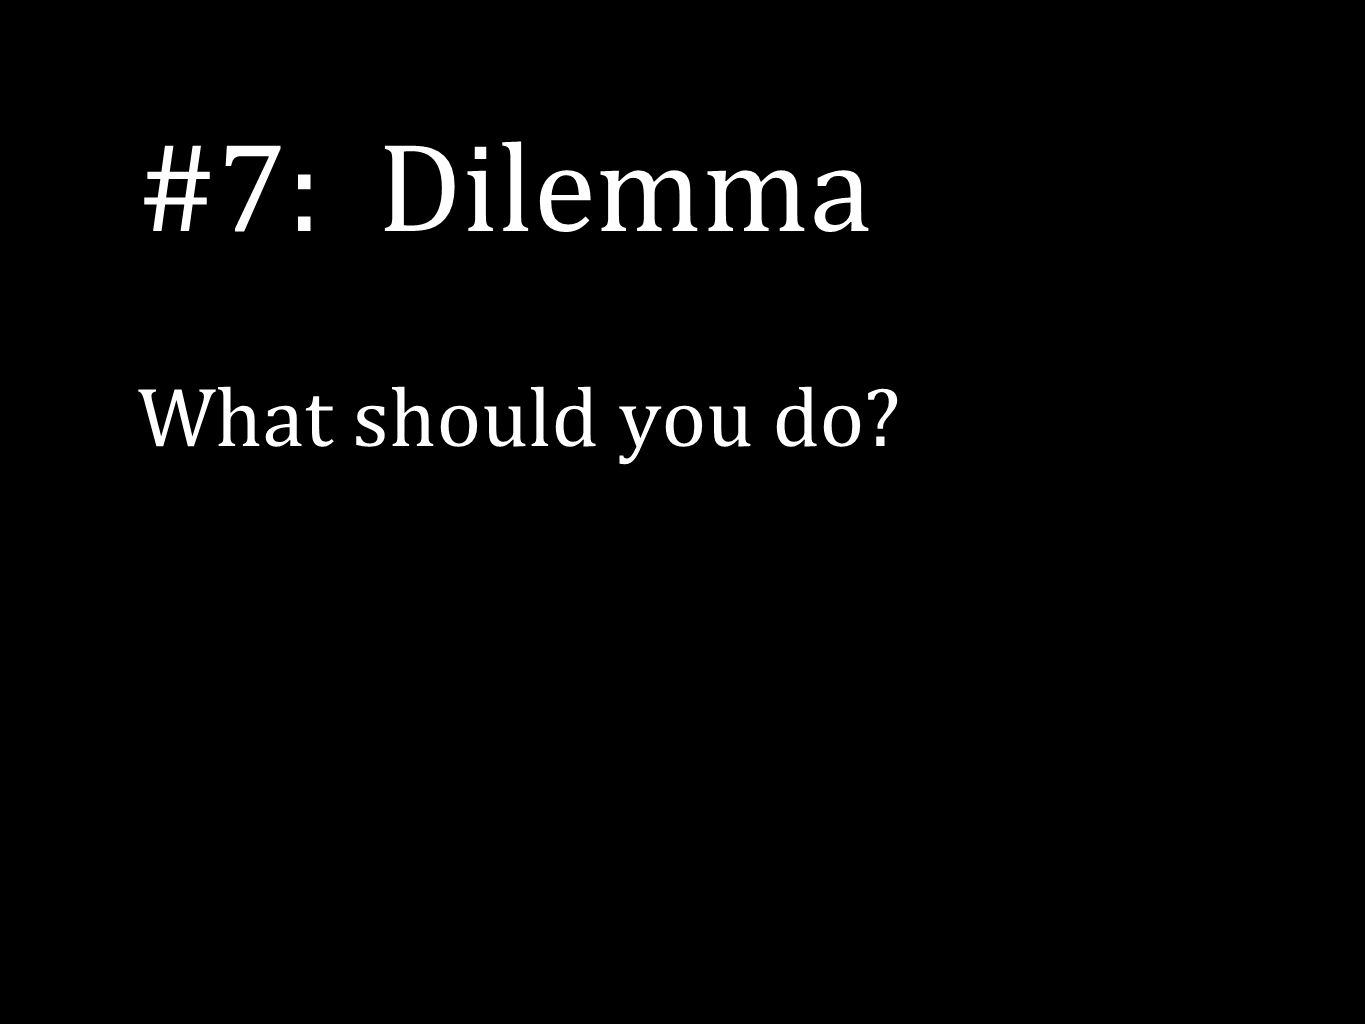 #7: Dilemma What should you do?